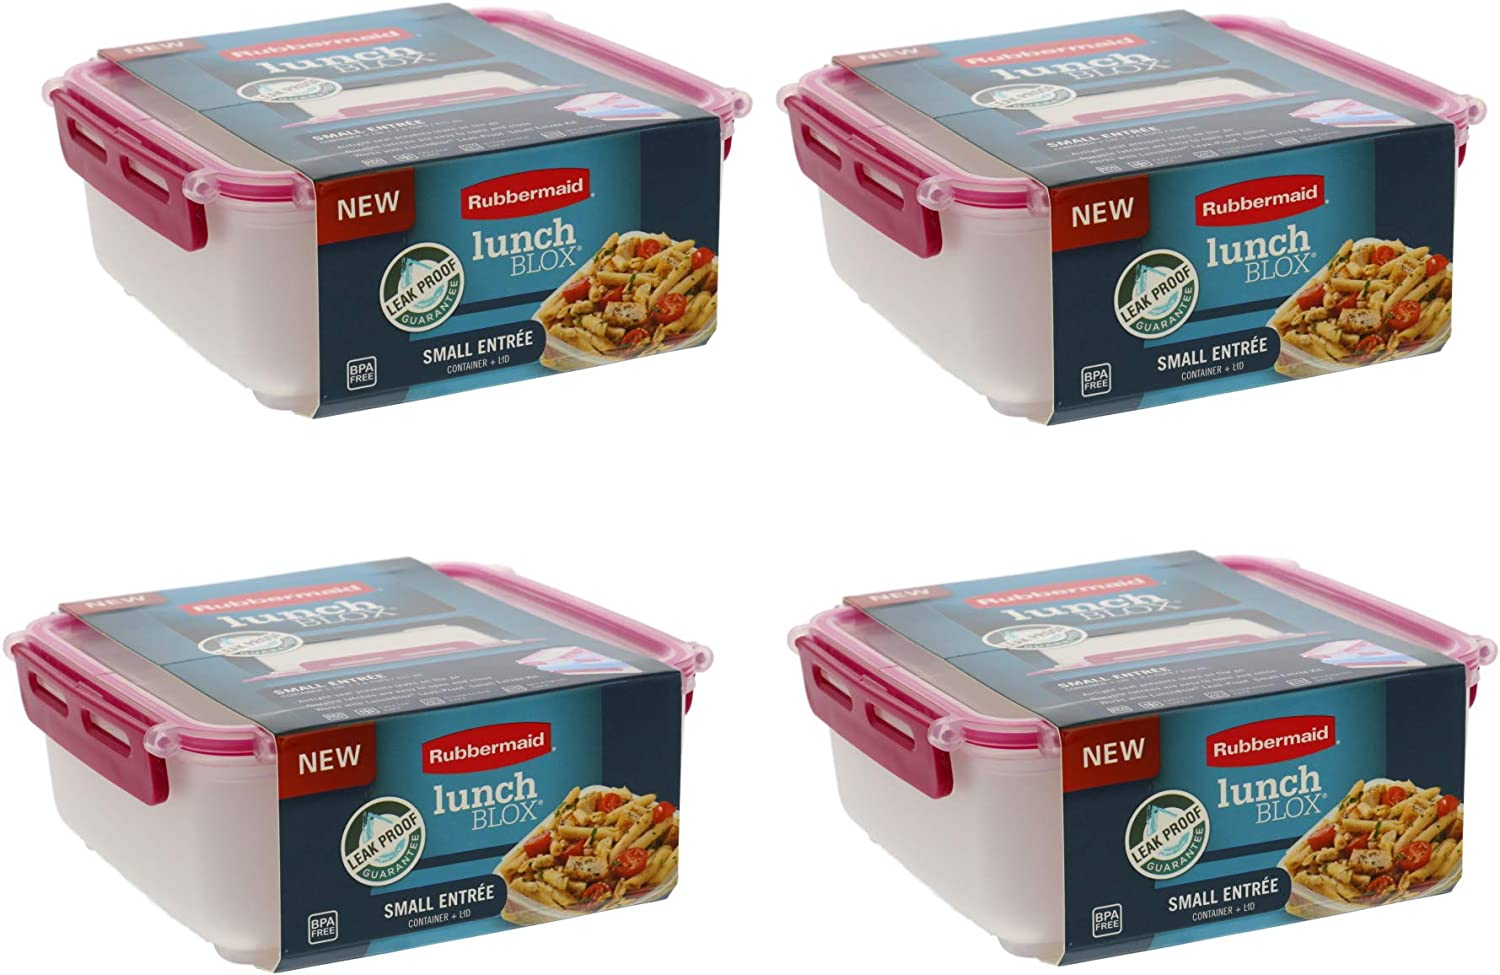 LunchBlox Leak Proof Small Entree Container with Lid-BPA Free, Stackable Lunch Box with Airtight Seal and Durable Latches-Great for Home, School Lunches, On the Go - 2.6 Cup, Coral (4 Pack)